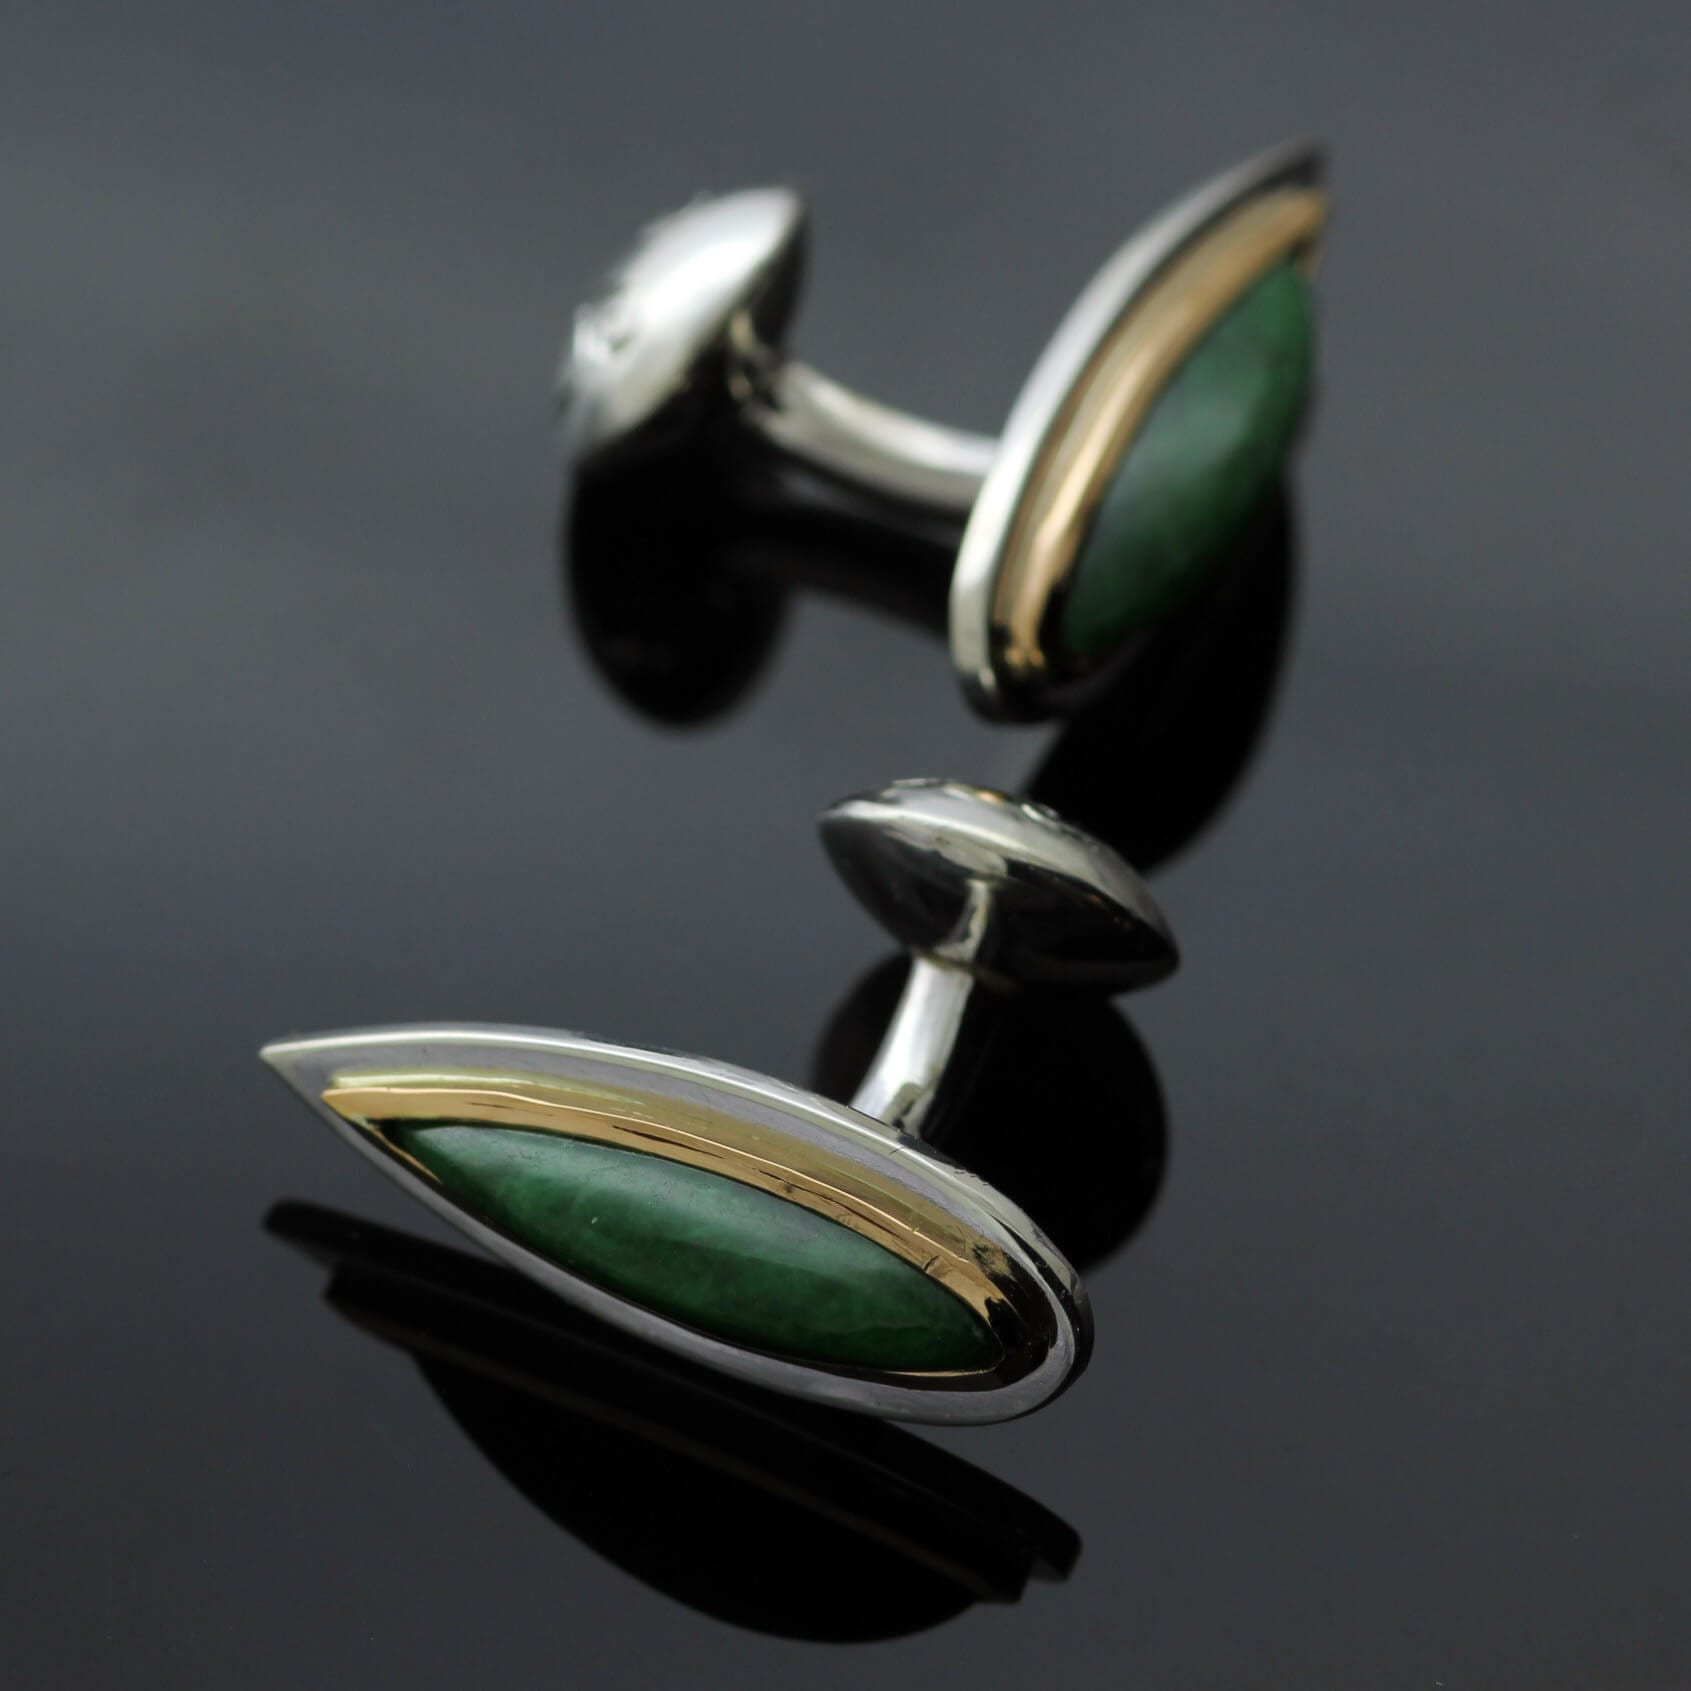 Bespoke Jade and Yellow Gold handmade cufflinks